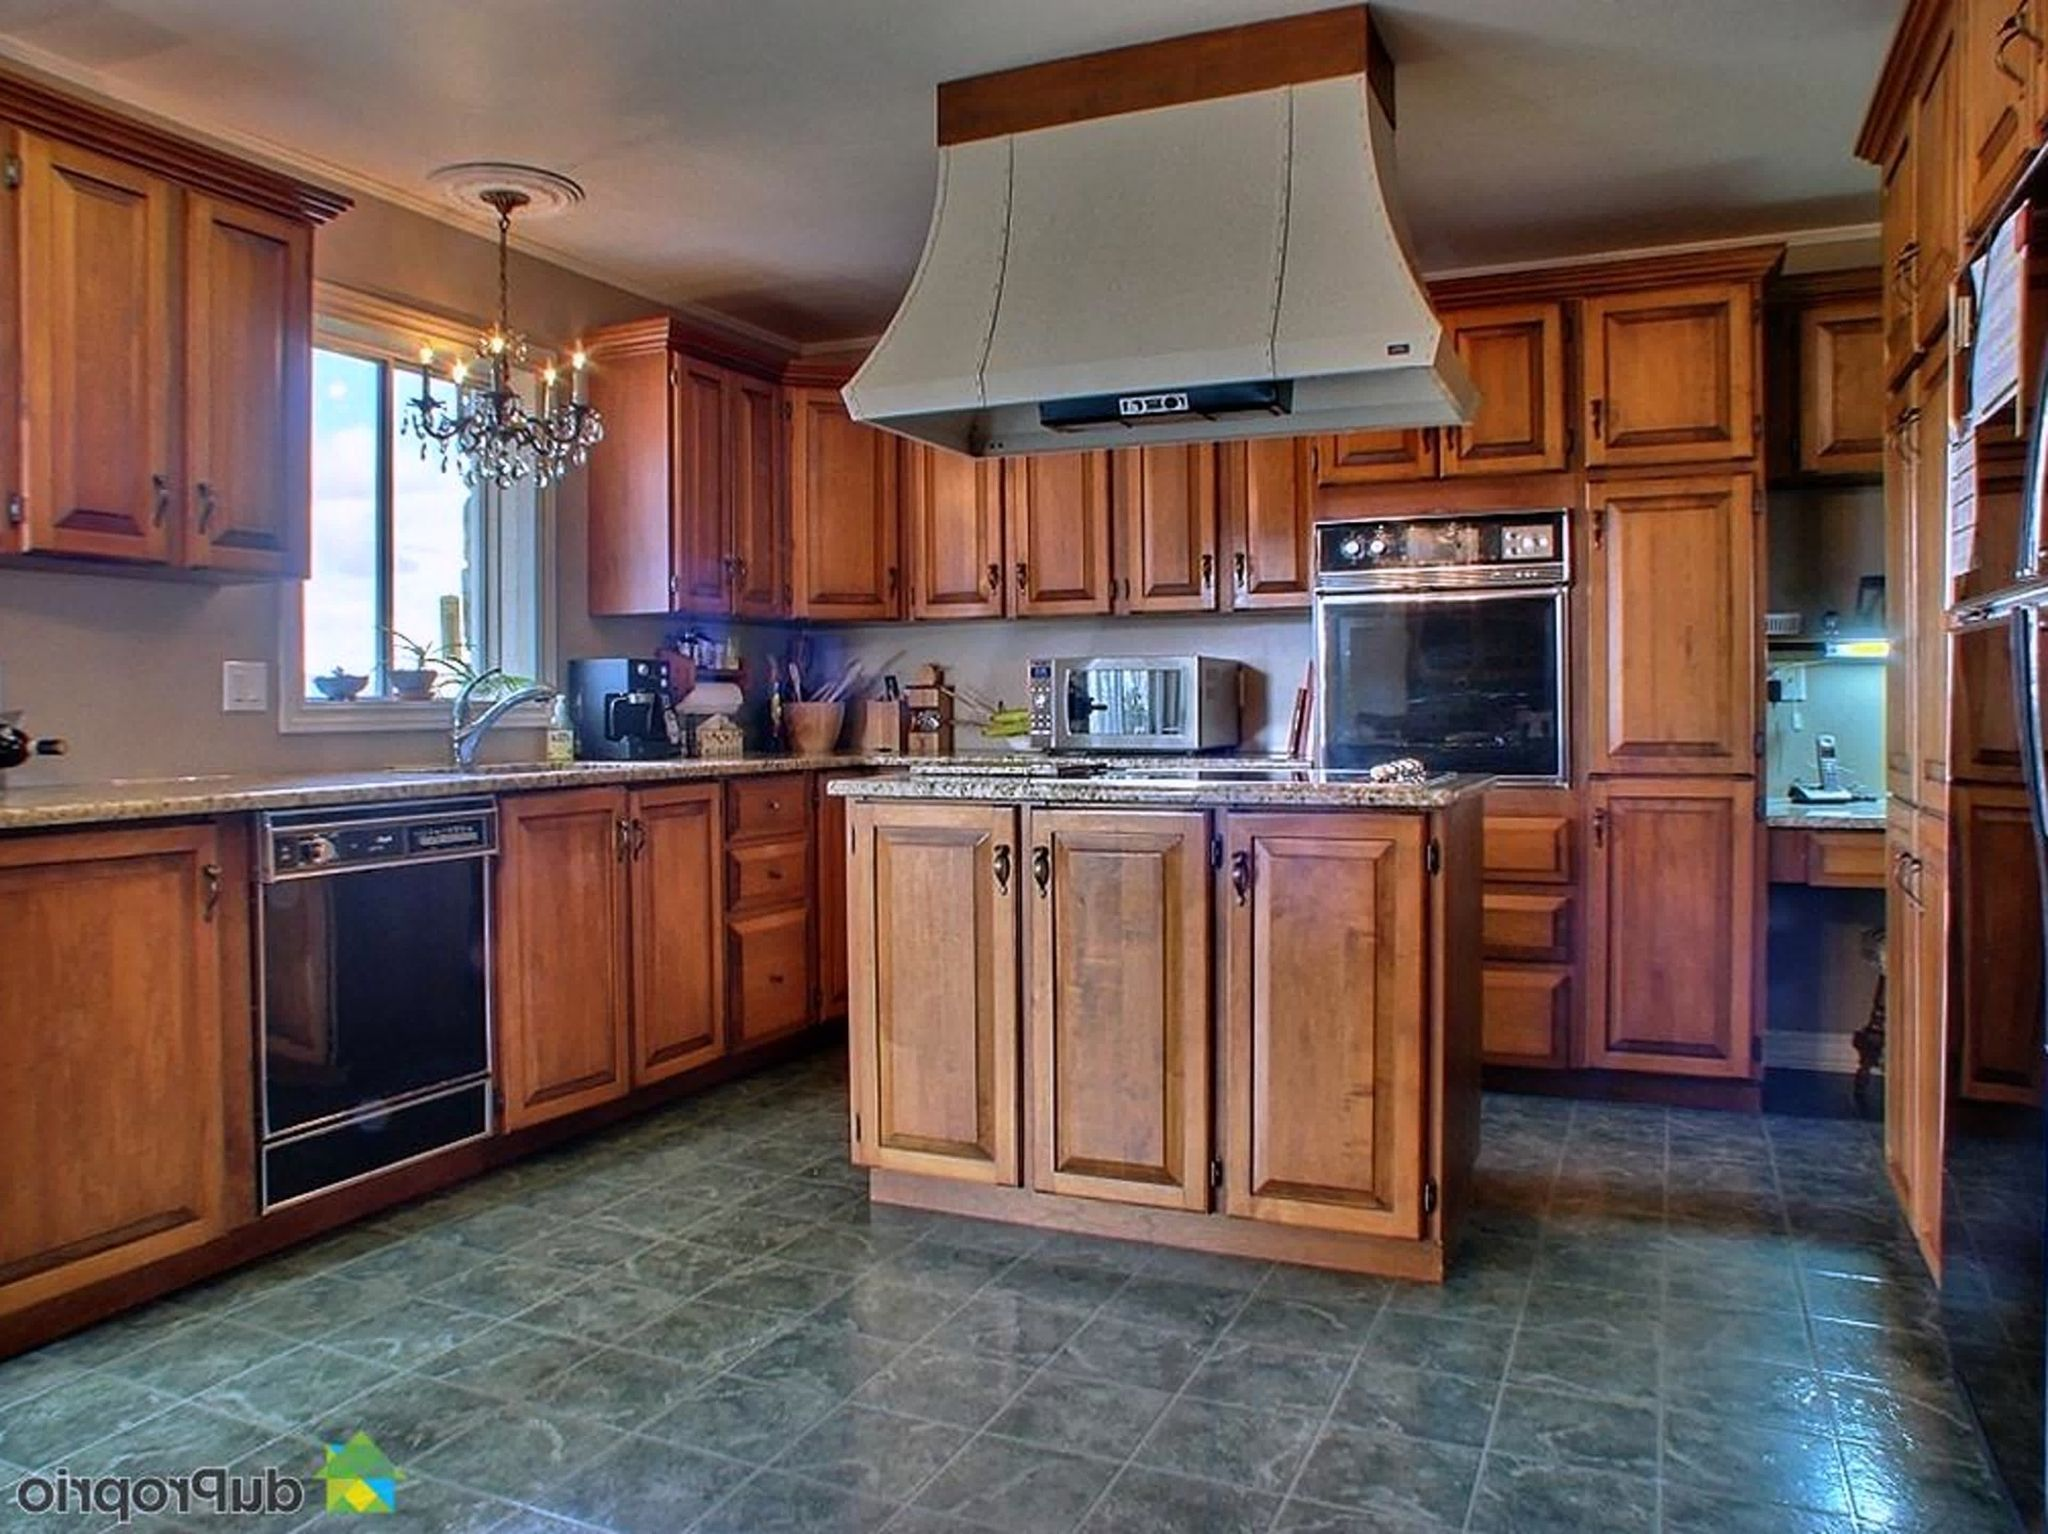 used kitchen cabinets for sale kitchen decor ideas on a bud